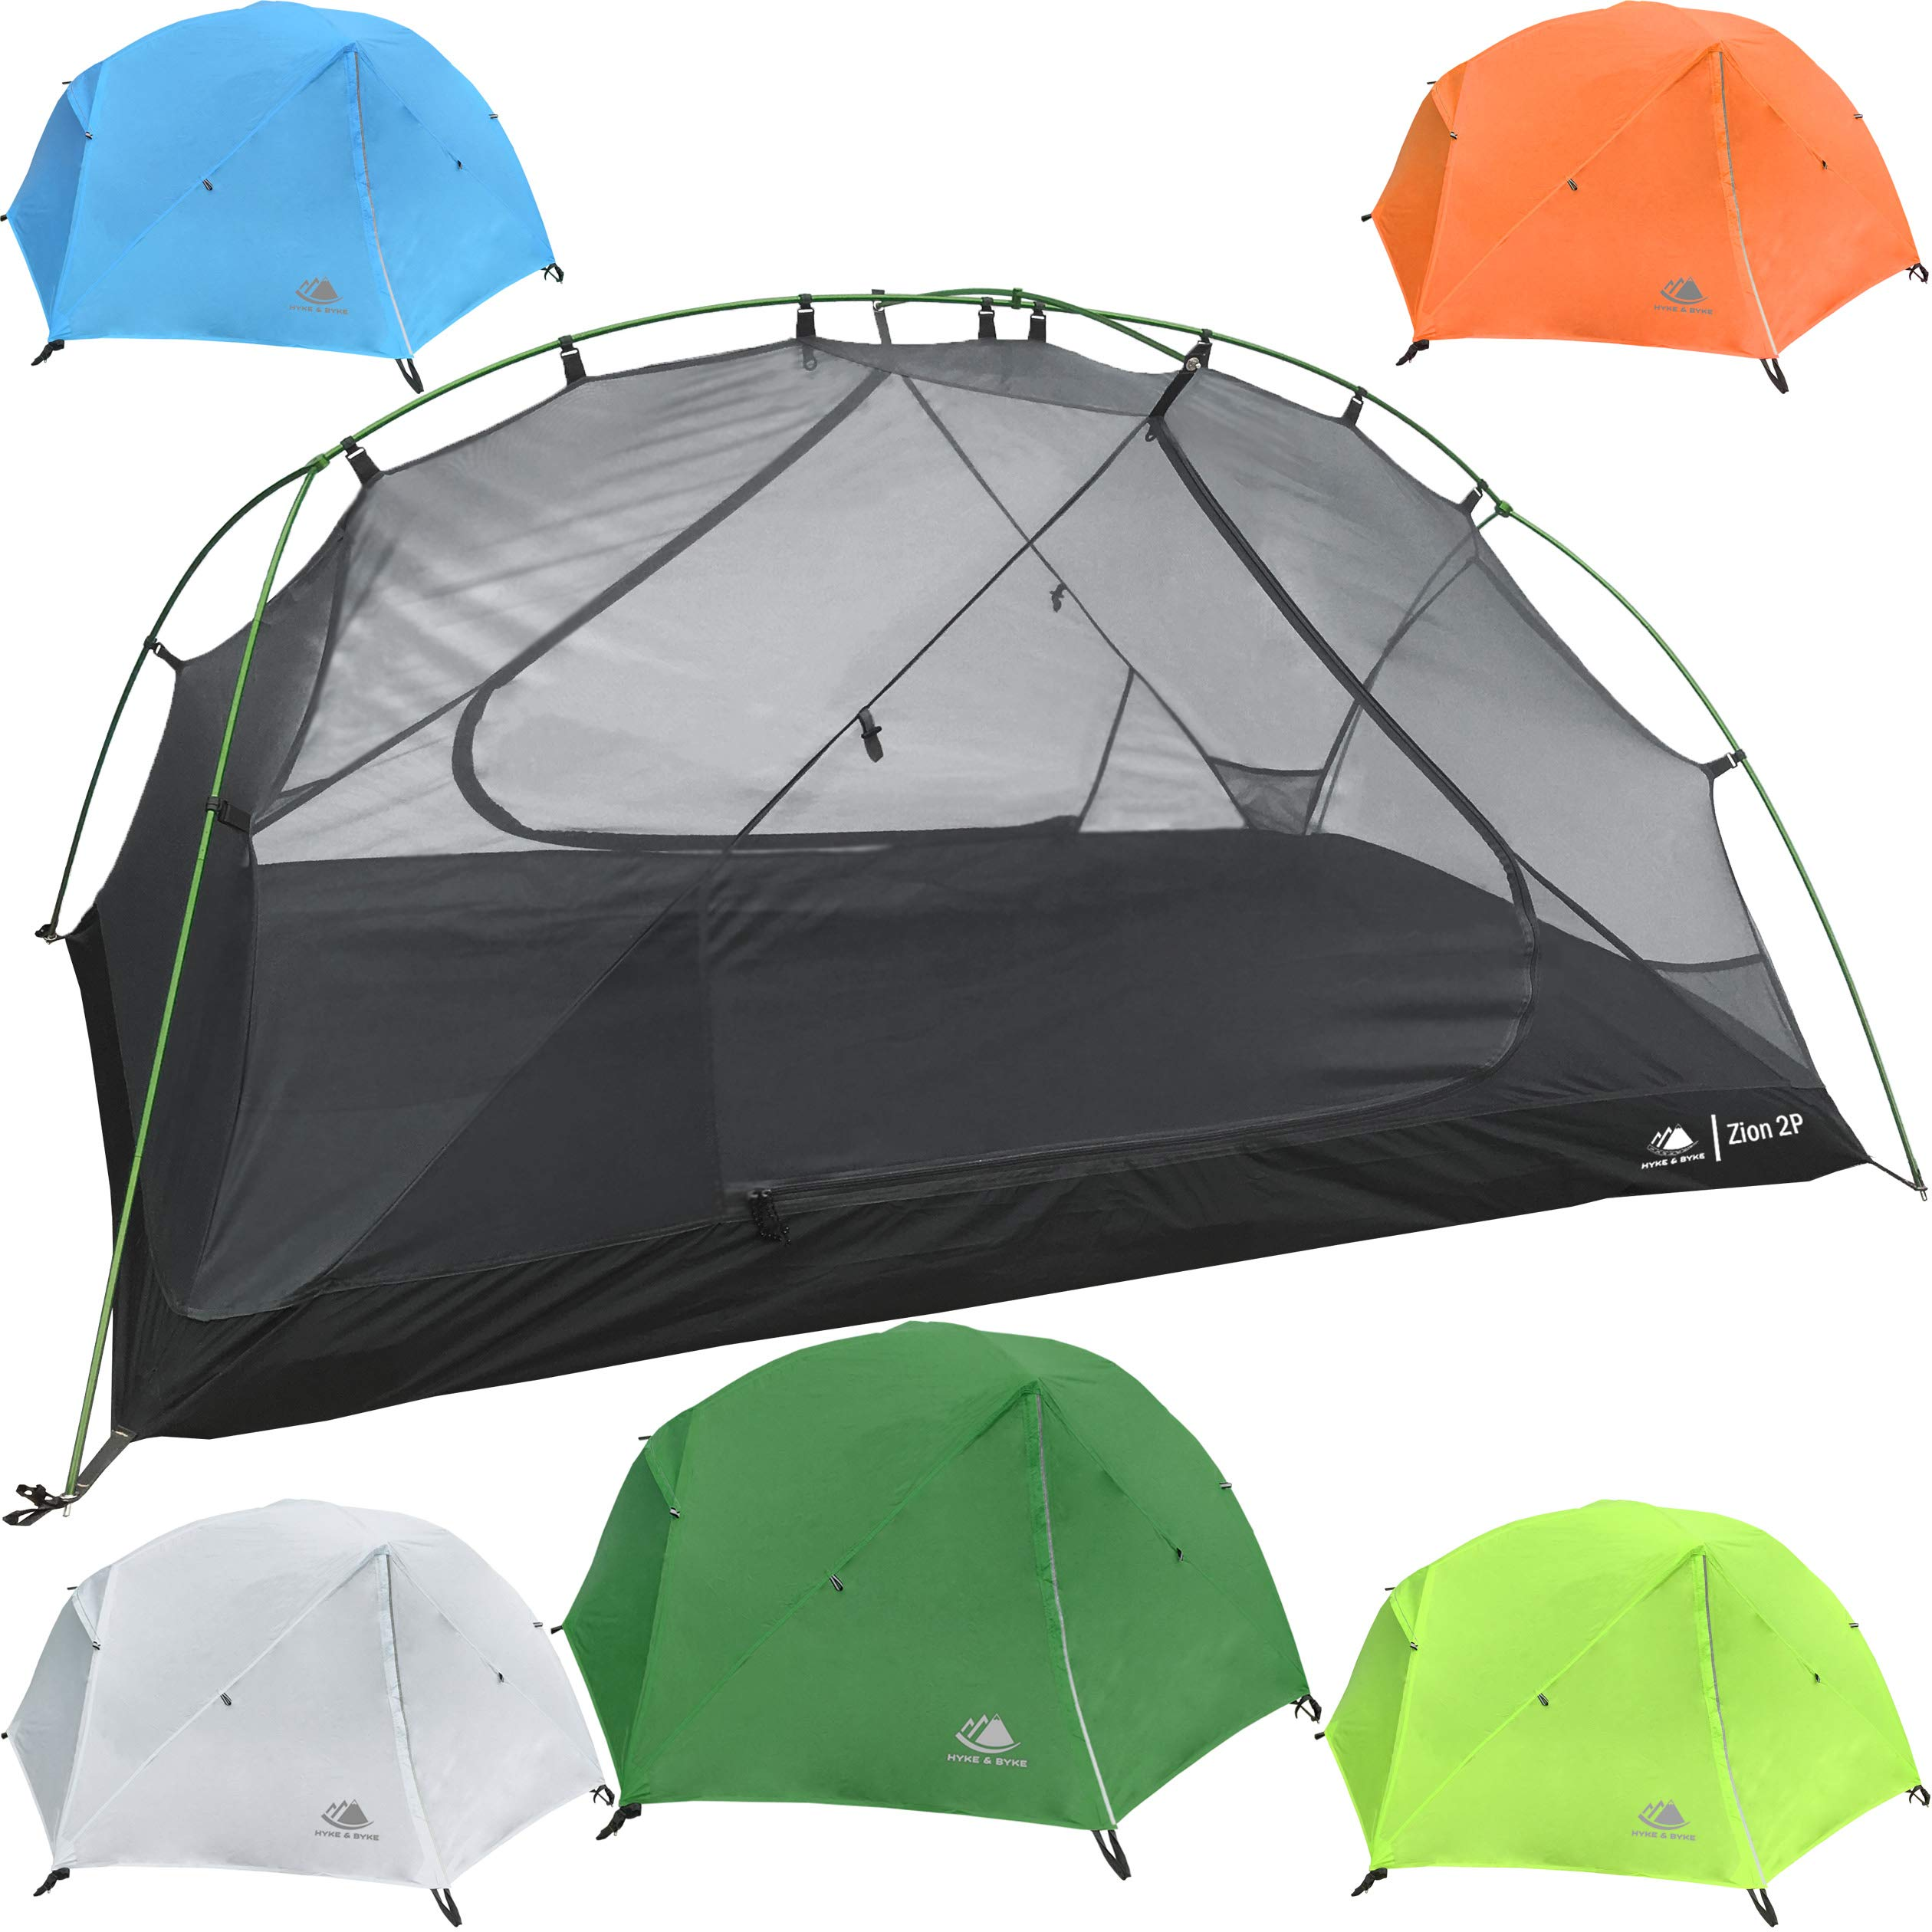 Hyke & Byke 2 Person Backpacking Tent with Footprint - Lightweight Zion Two Man 3 Season Ultralight, Waterproof, Ultra Compact 2p Freestanding Backpack Tents for Camping and Hiking (Forest Green) by Hyke & Byke